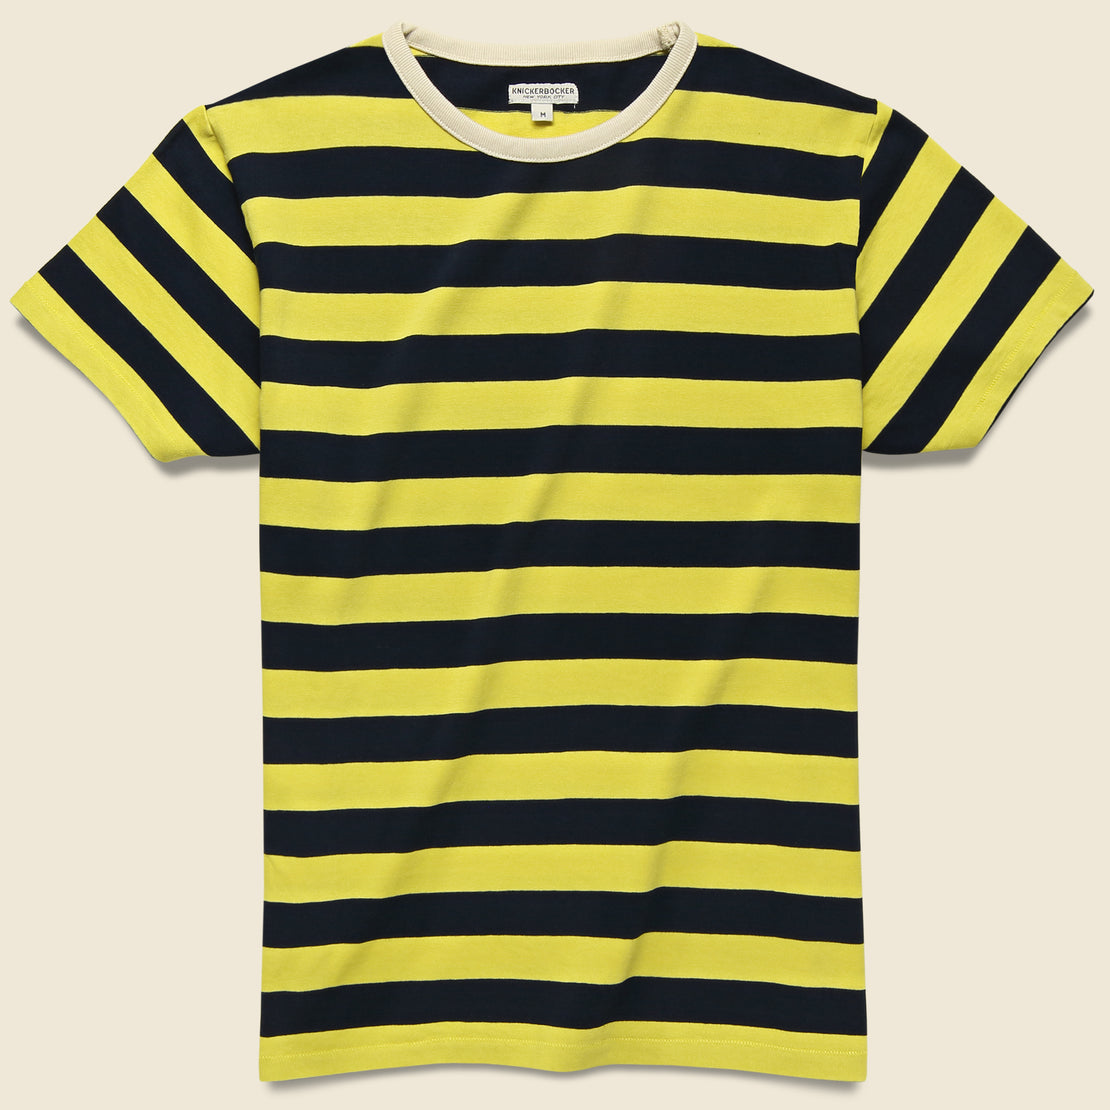 Knickerbocker Mojave Striped Tee - Yellow/Blue